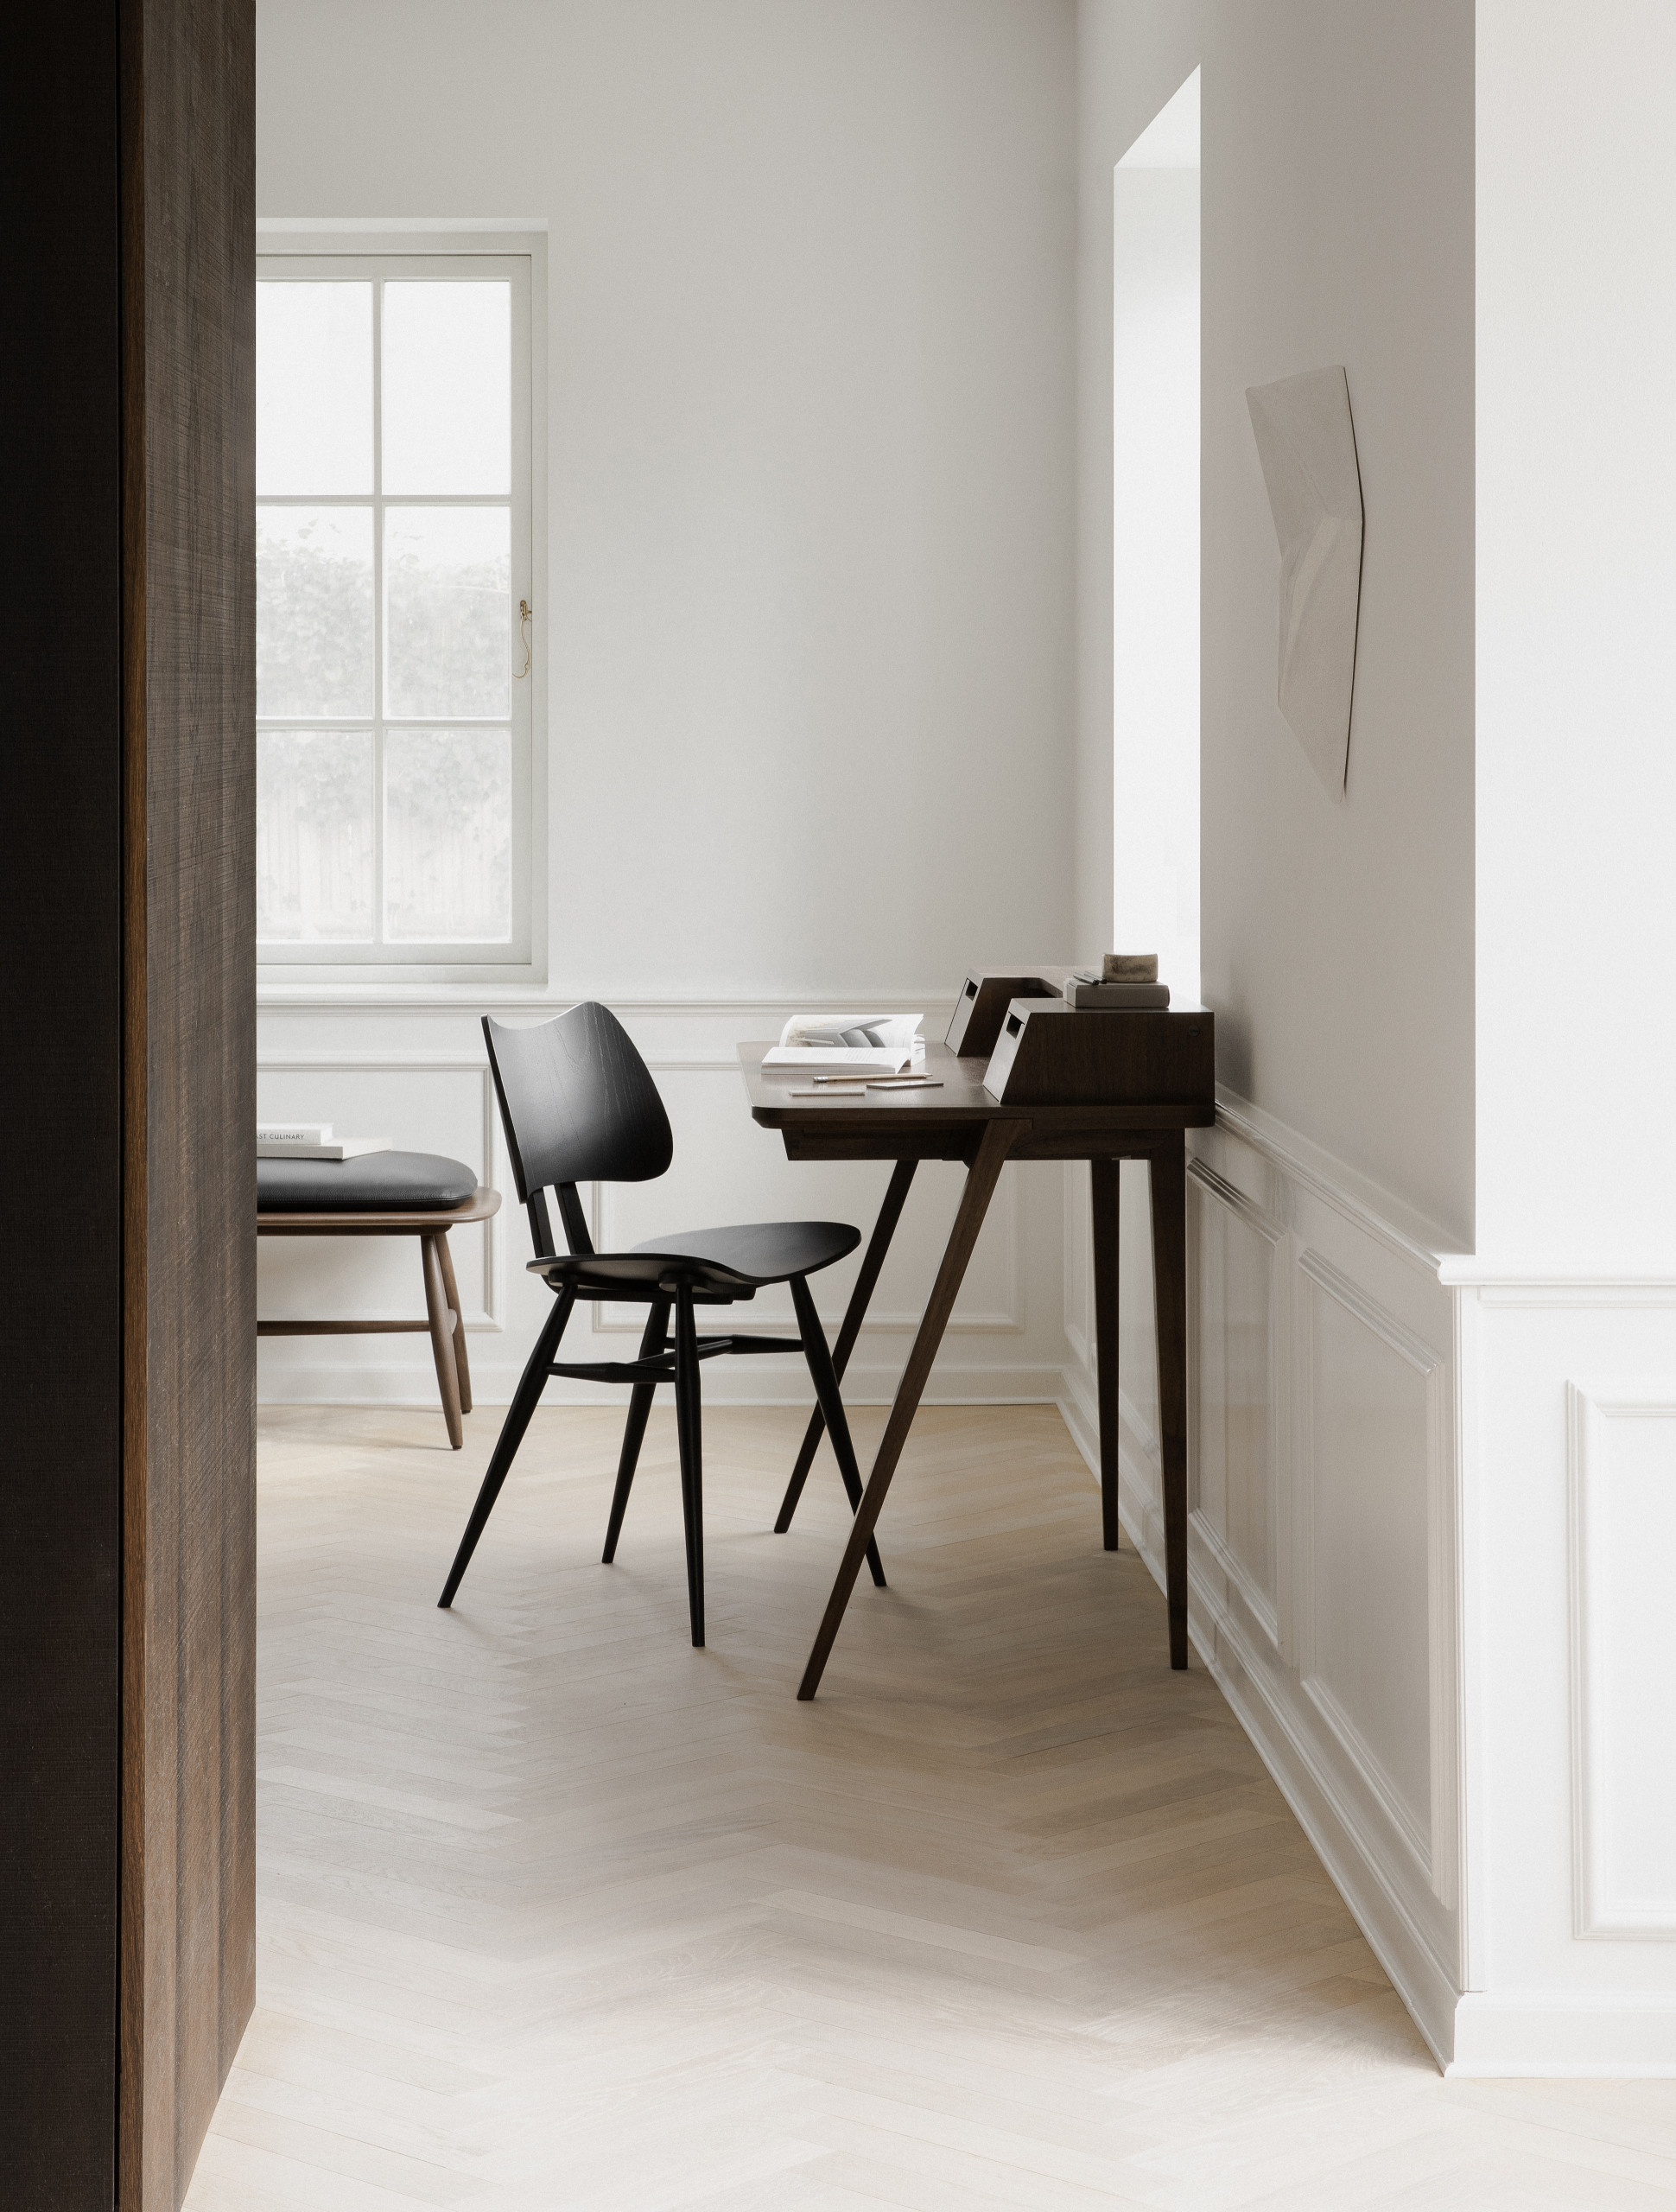 Treviso Desk - <p>The handcrafted Treviso desk designed by Matthew Hilton captures an element of architectural character, combined with a timeless elegance, amplified through the natural beauty of solid, pale oak or rich, dark walnut. The perfect pairing with a Butterfly Chair from the Originals collection.</p>    Matter of Stuff